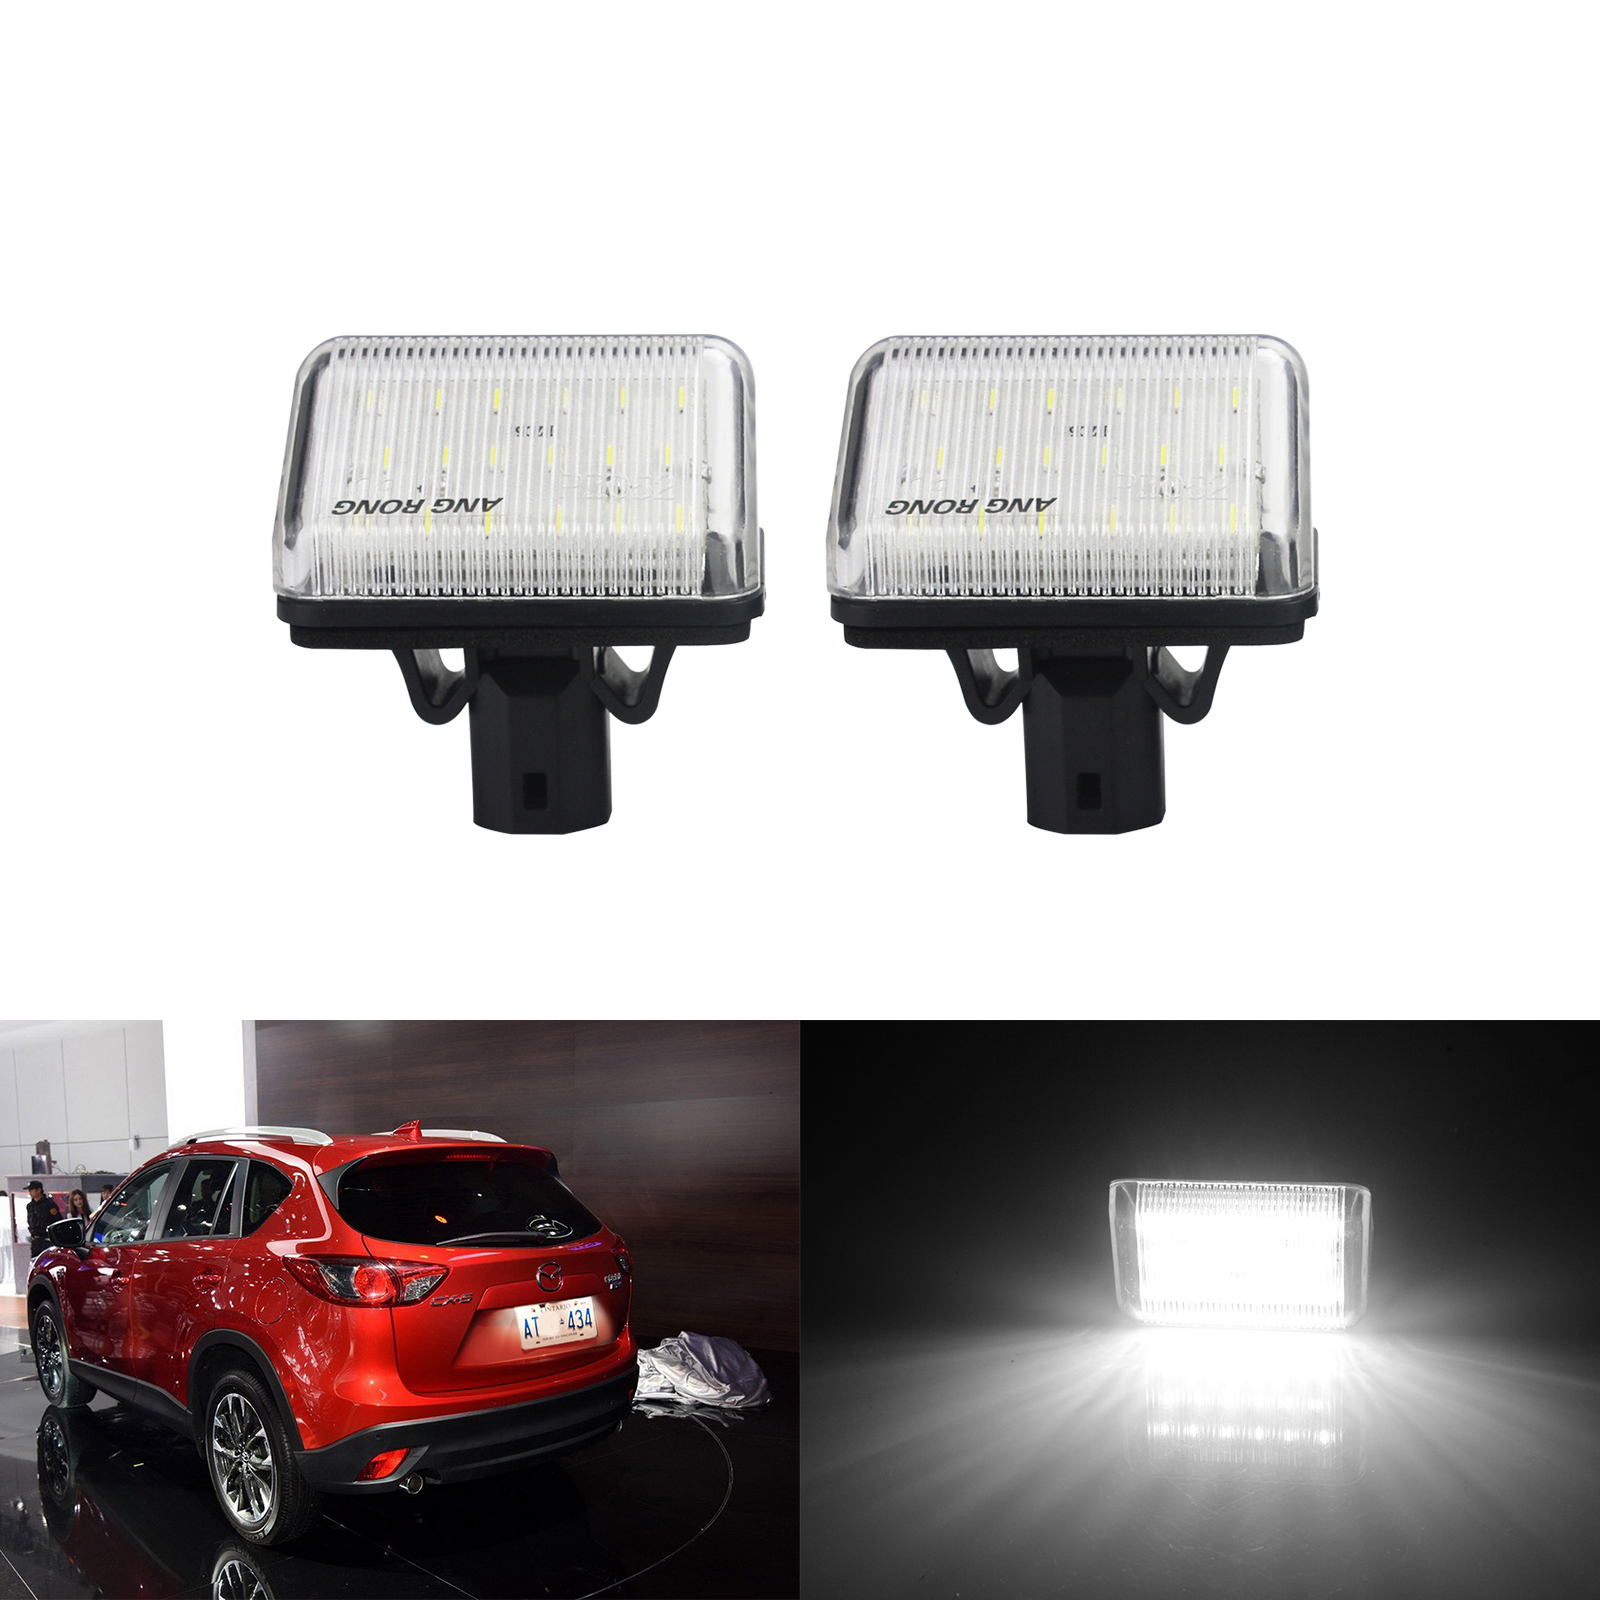 2x Mazda 6 GY Bright Xenon White LED Number Plate Upgrade Light Bulbs